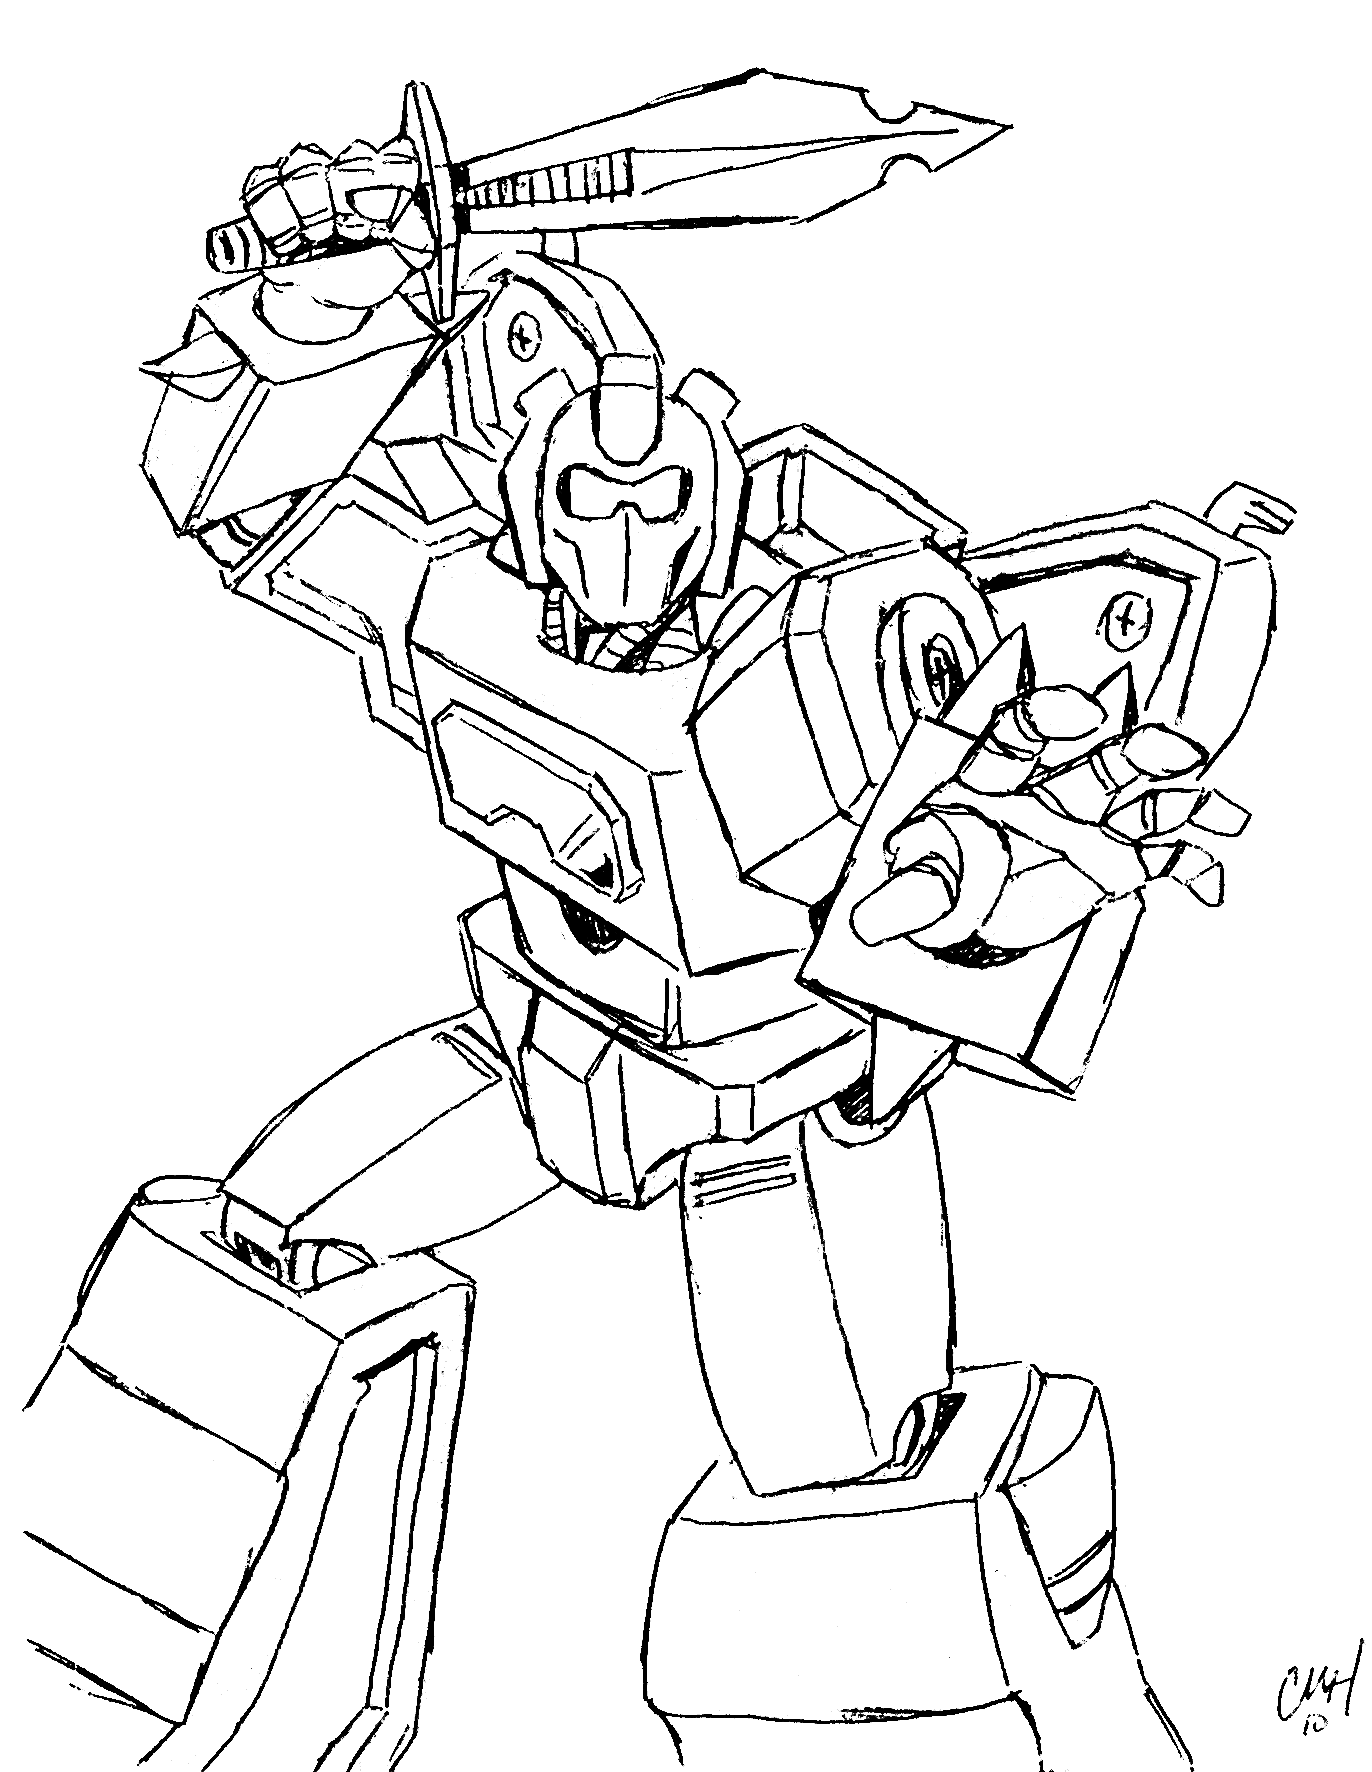 Coloring Pages Transformer Color Page free printable transformers coloring pages for kids online